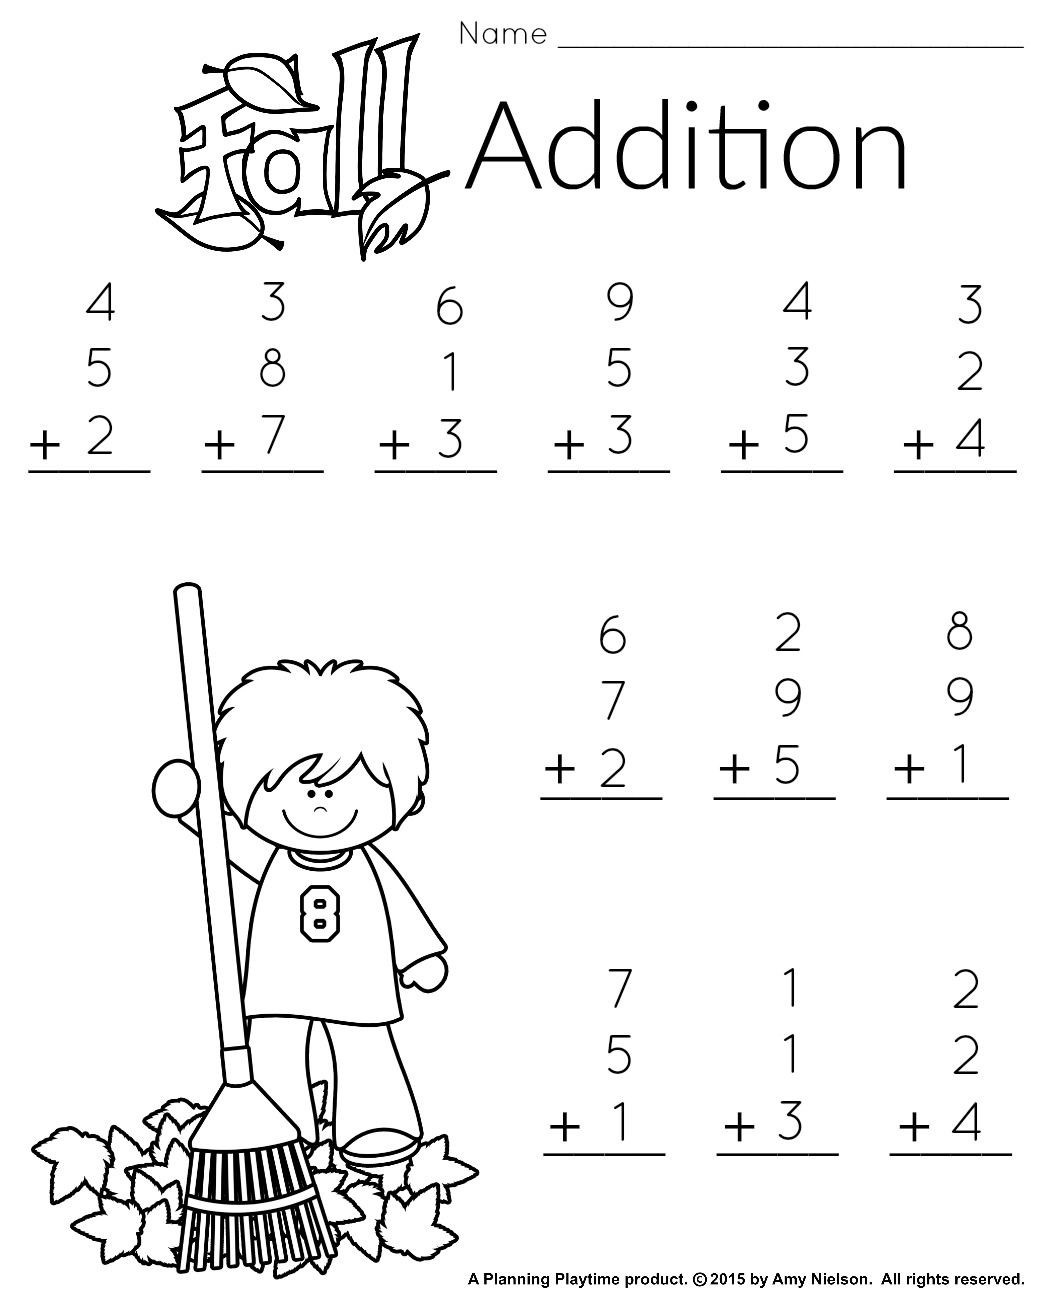 Addition Practice For 1st Grade Worksheets